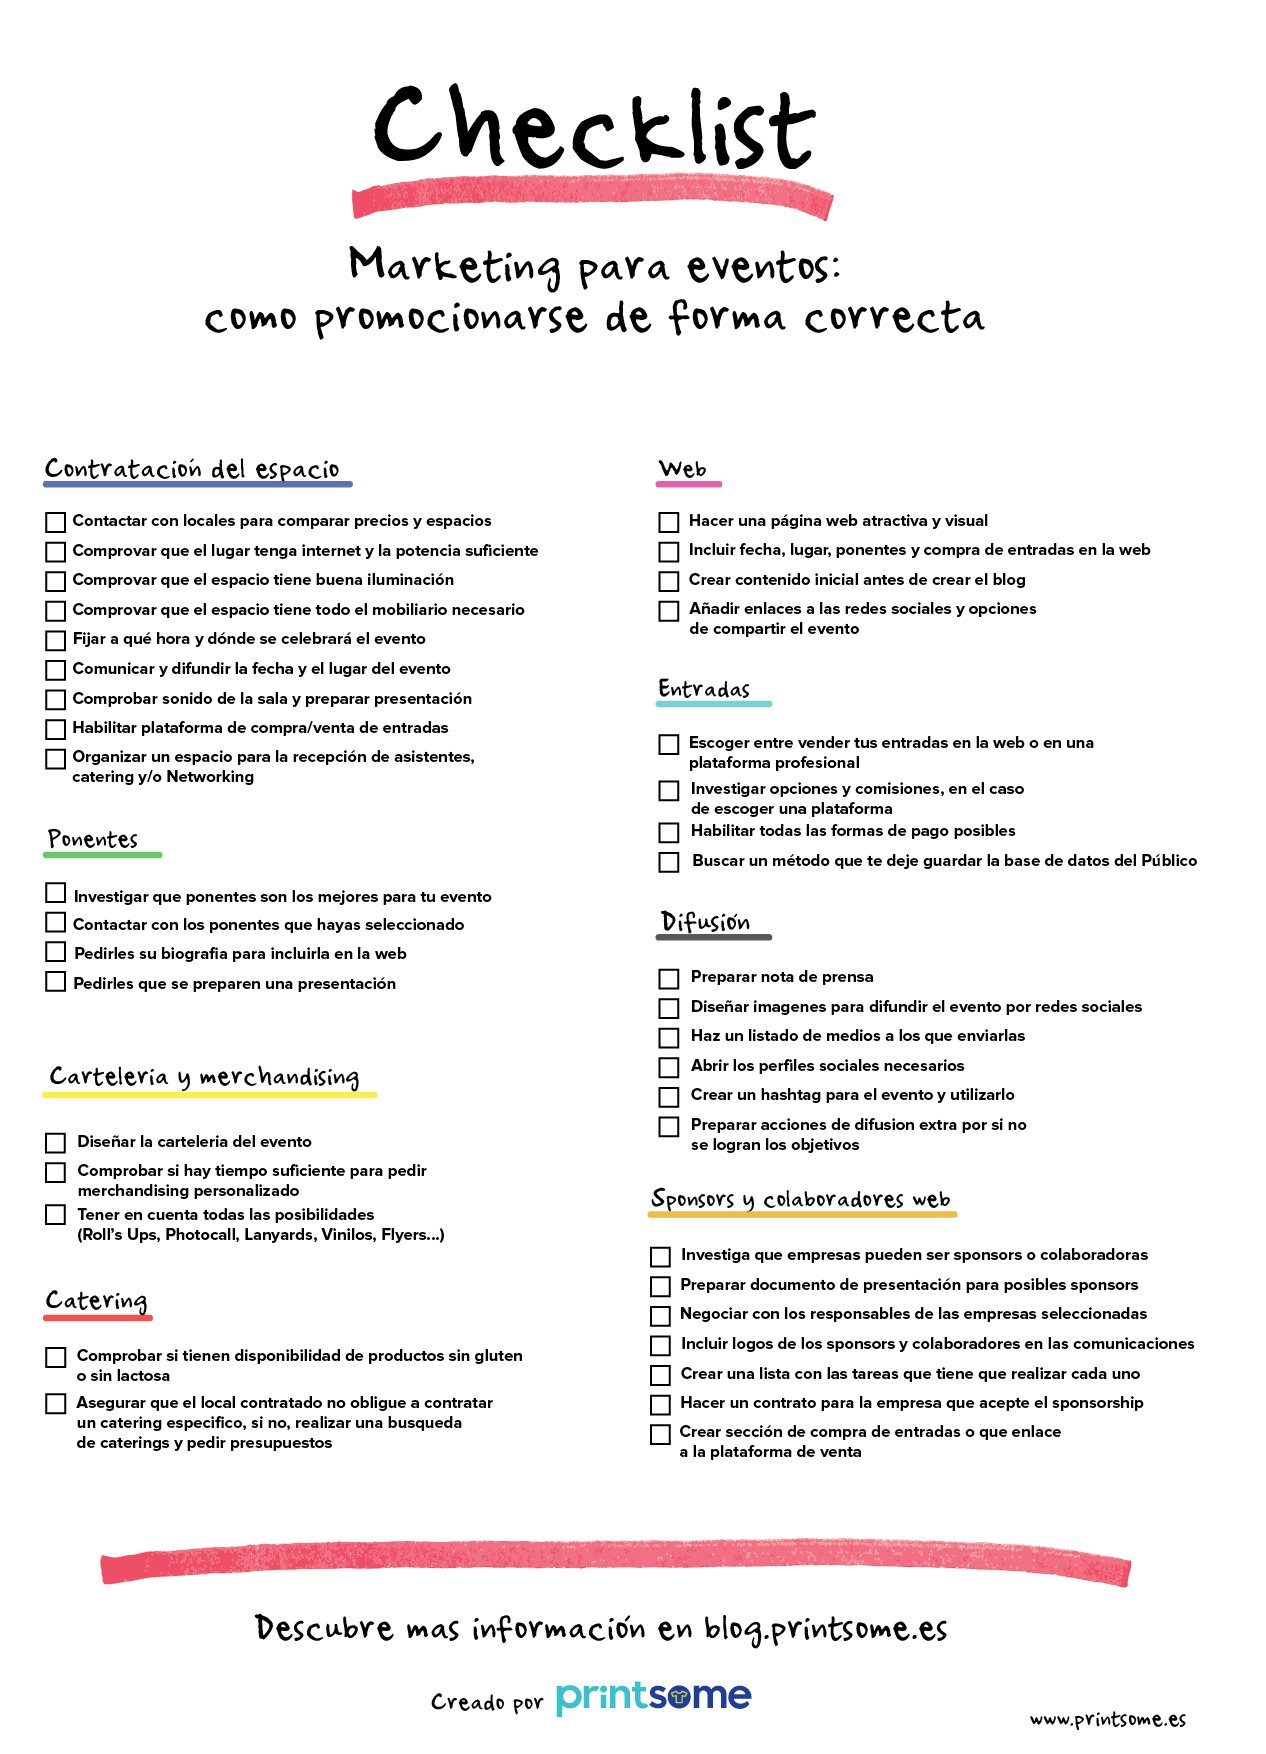 checklist marketing para eventos